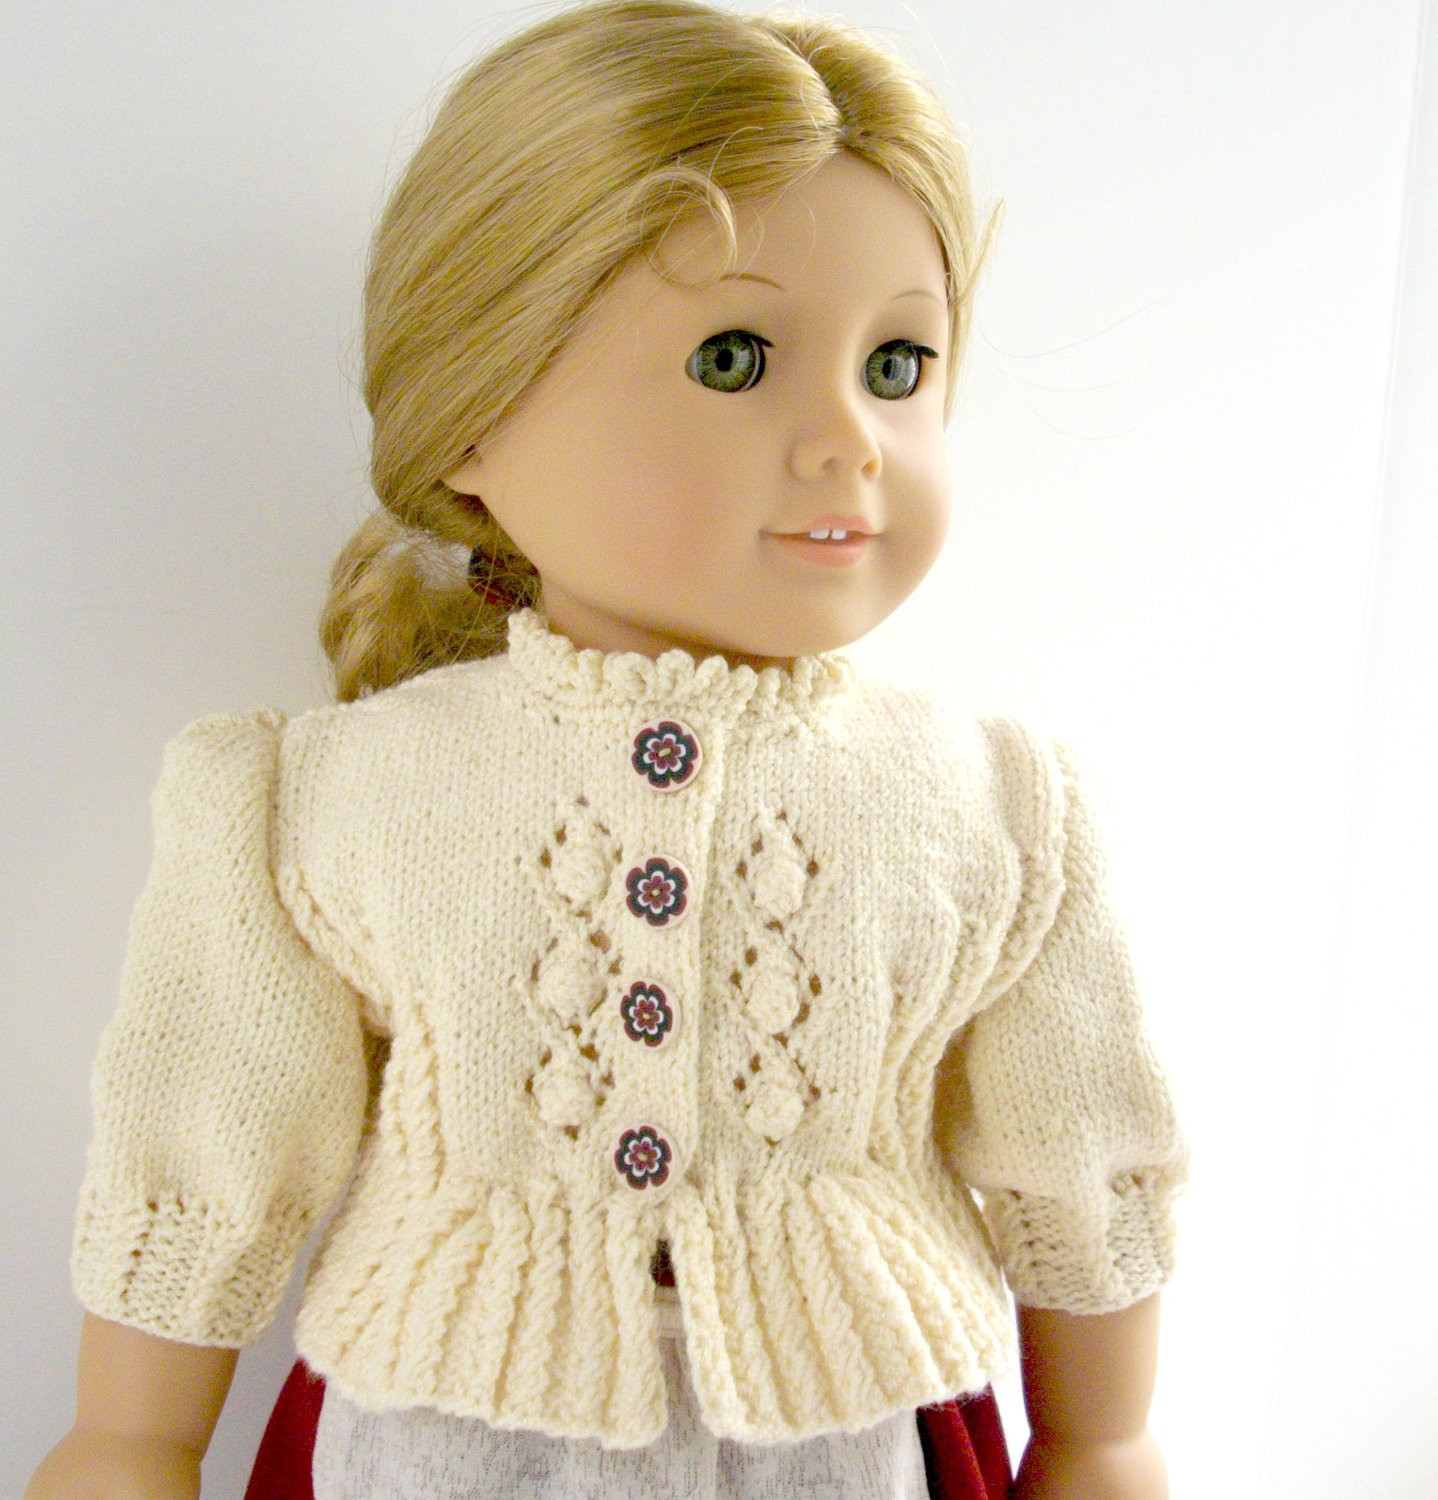 Doll Patterns Fresh American Girl Doll 18 Gotz Doll Knitting Pattern Folk Of Doll Patterns Best Of Gingermelon Dolls My Felt Doll Knitted Outfit Patterns